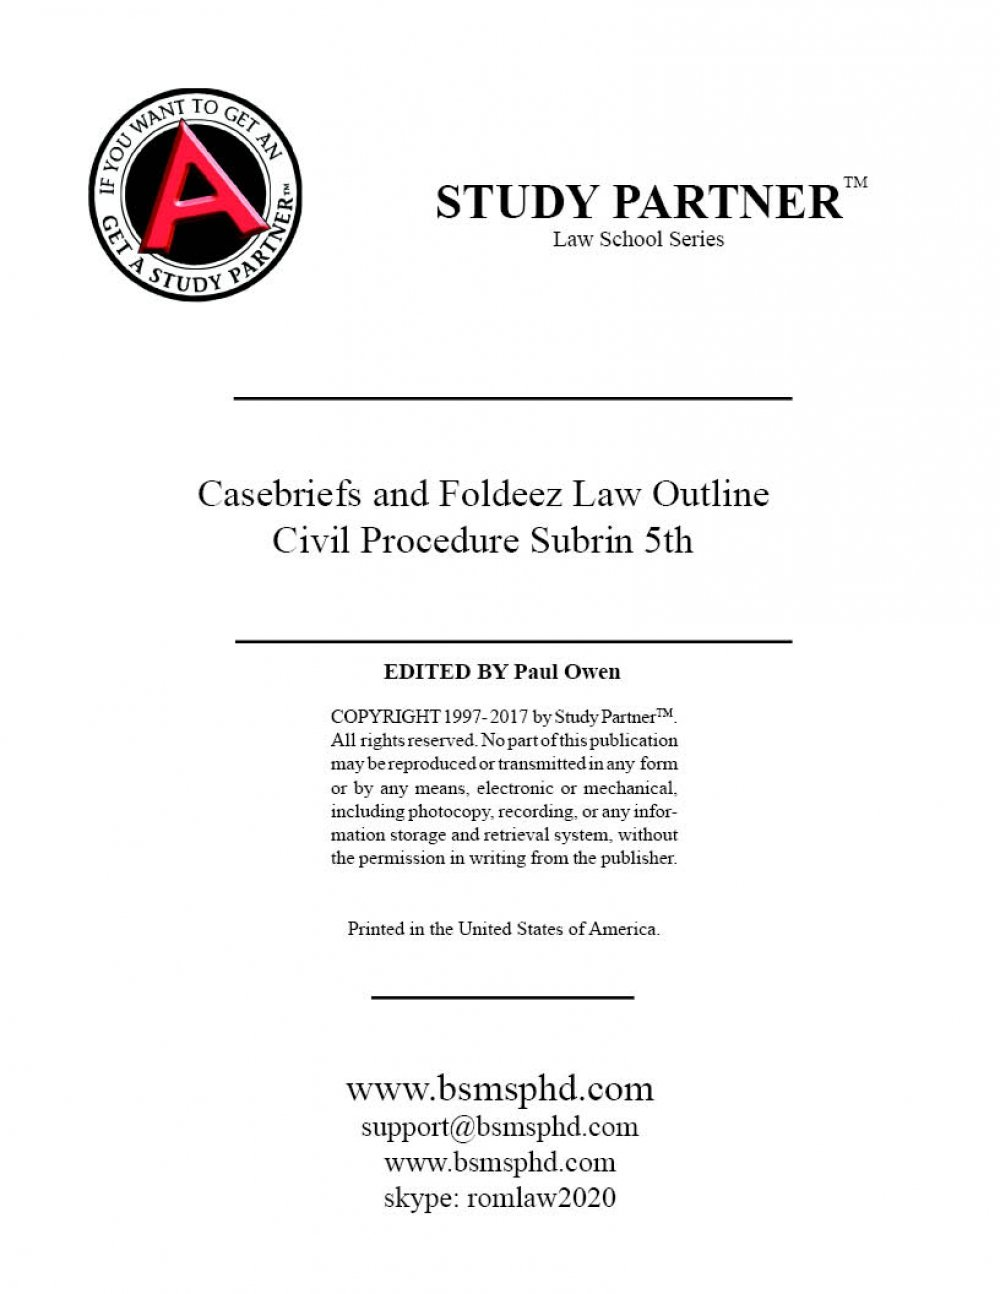 Casebriefs and Foldeez Law Outline for Civil Procedure: Doctrine, Practice, and Context 5th by Subrin ISBN 9781454868378, 9781454881964, 9781454881957, 9781454881940, 1454868376, 1454881941 pdf